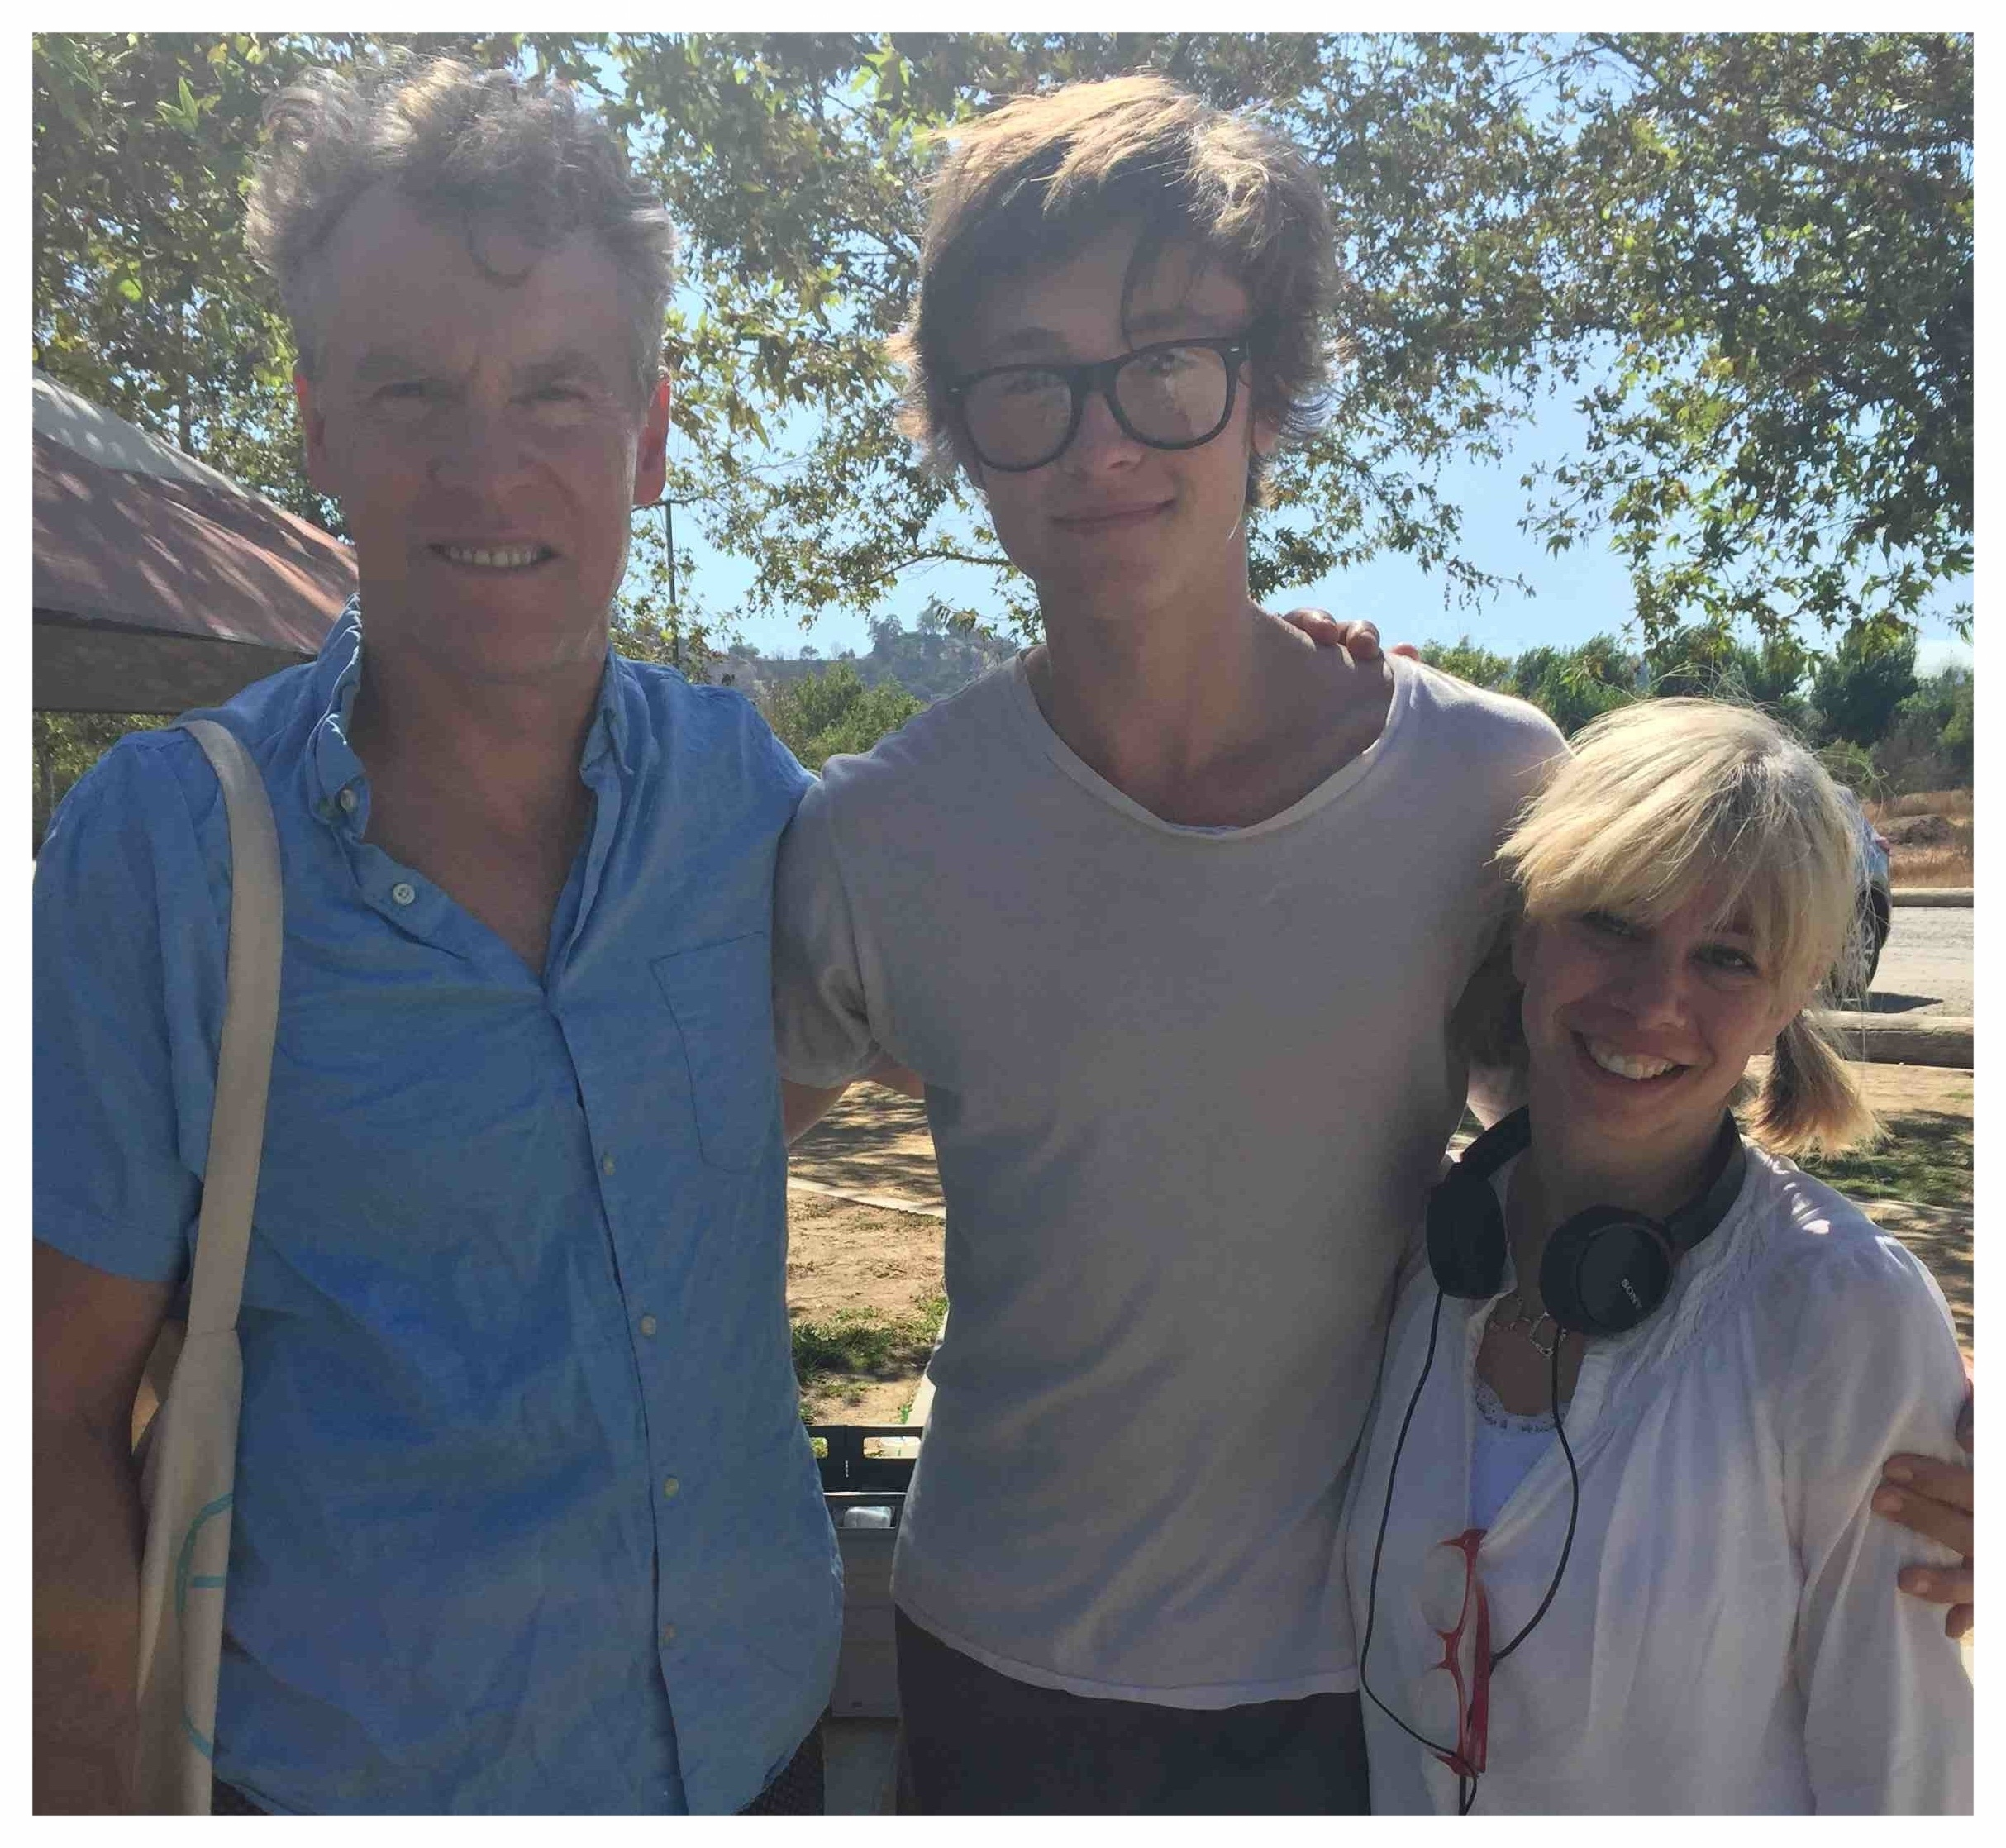 On the set of  Crowbar Smile  with the very talented, and very tall Tate Donovan and Tristan Lake Leabu.